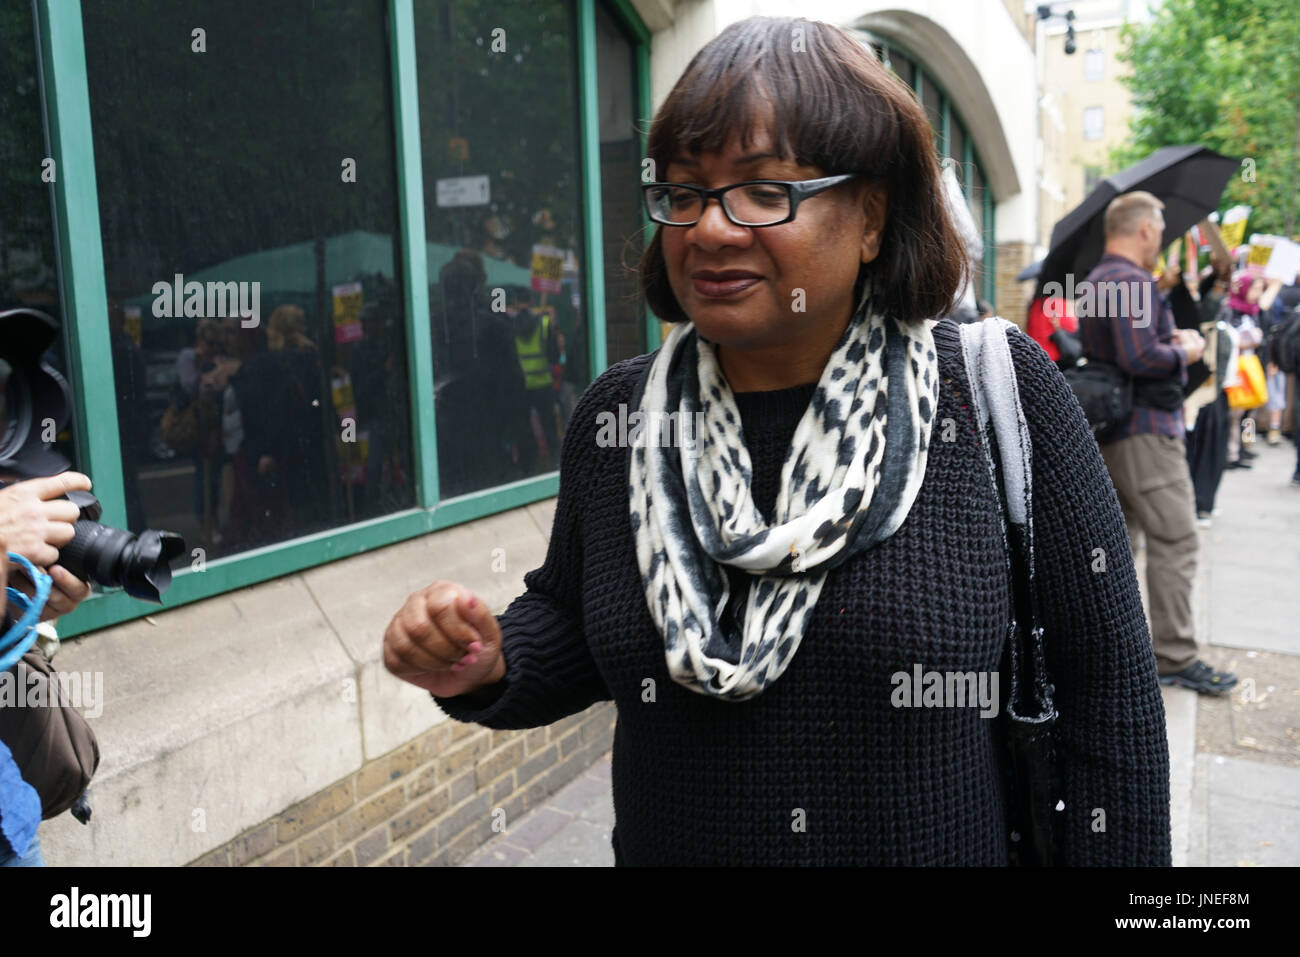 Stoke Newington Police, London, England, UK. 29th July, 2017. Diane Abbott leaving after a speaks at Justice For - Stock Image